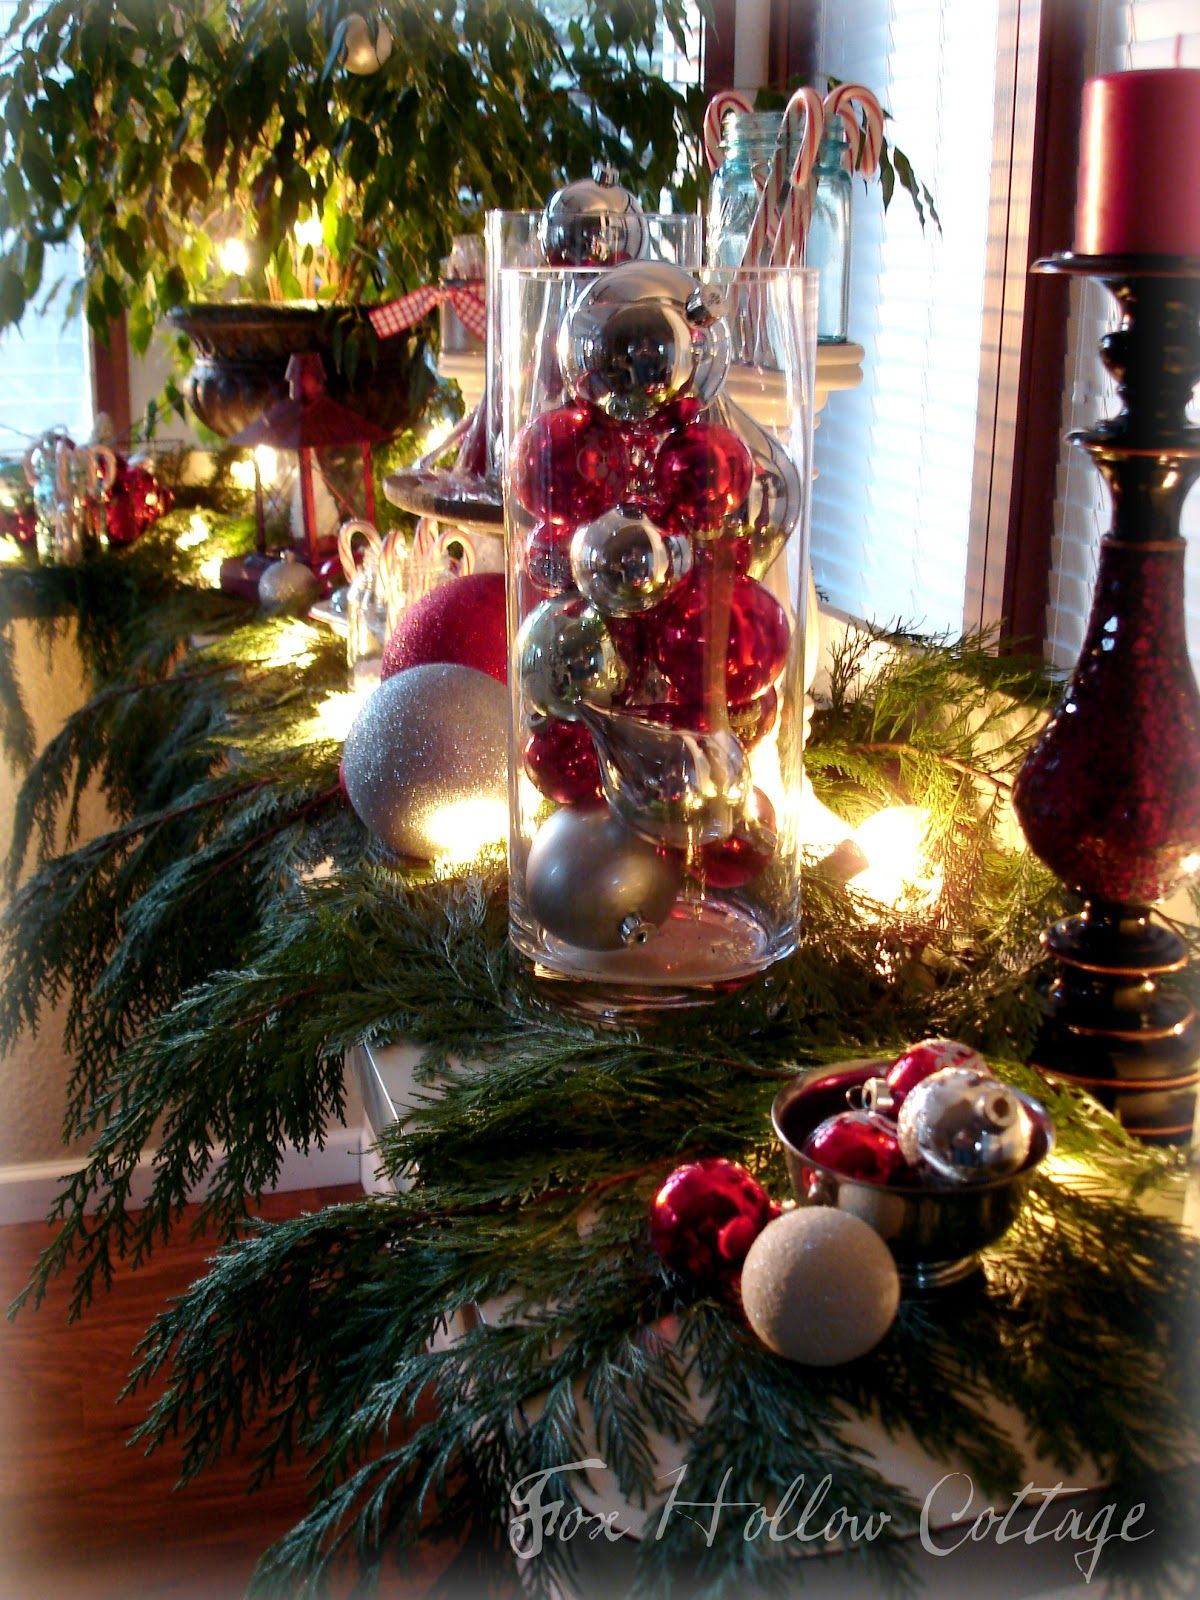 Fox Hollow Cottage Thrifty Christmas Decorating with